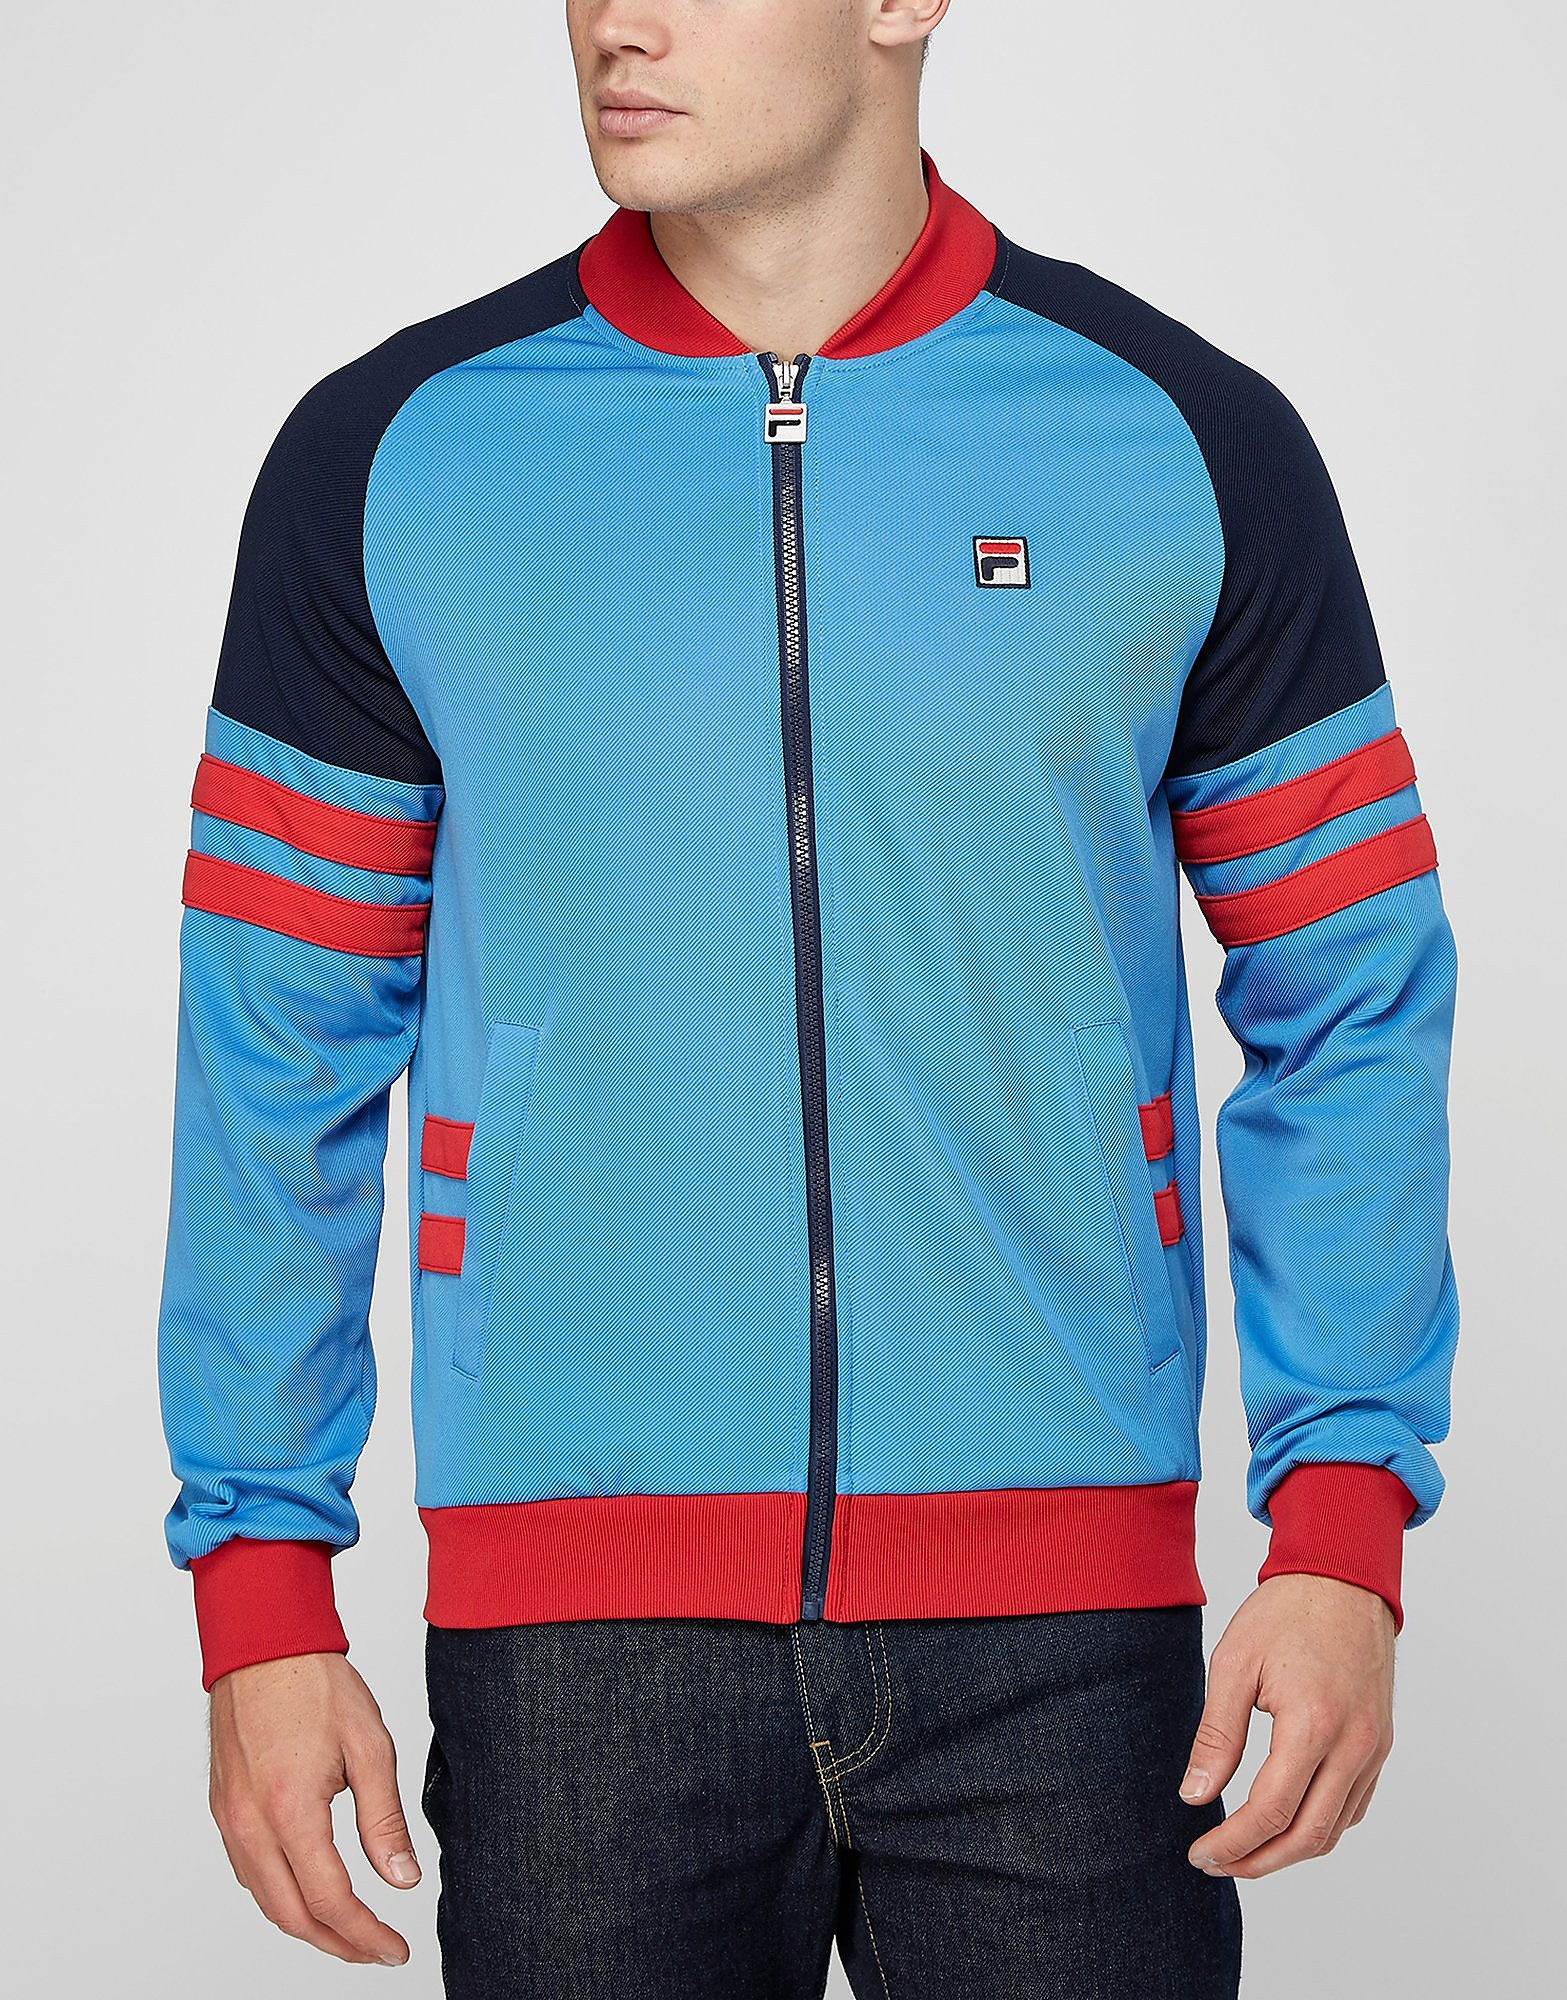 Fila Founder Track Top